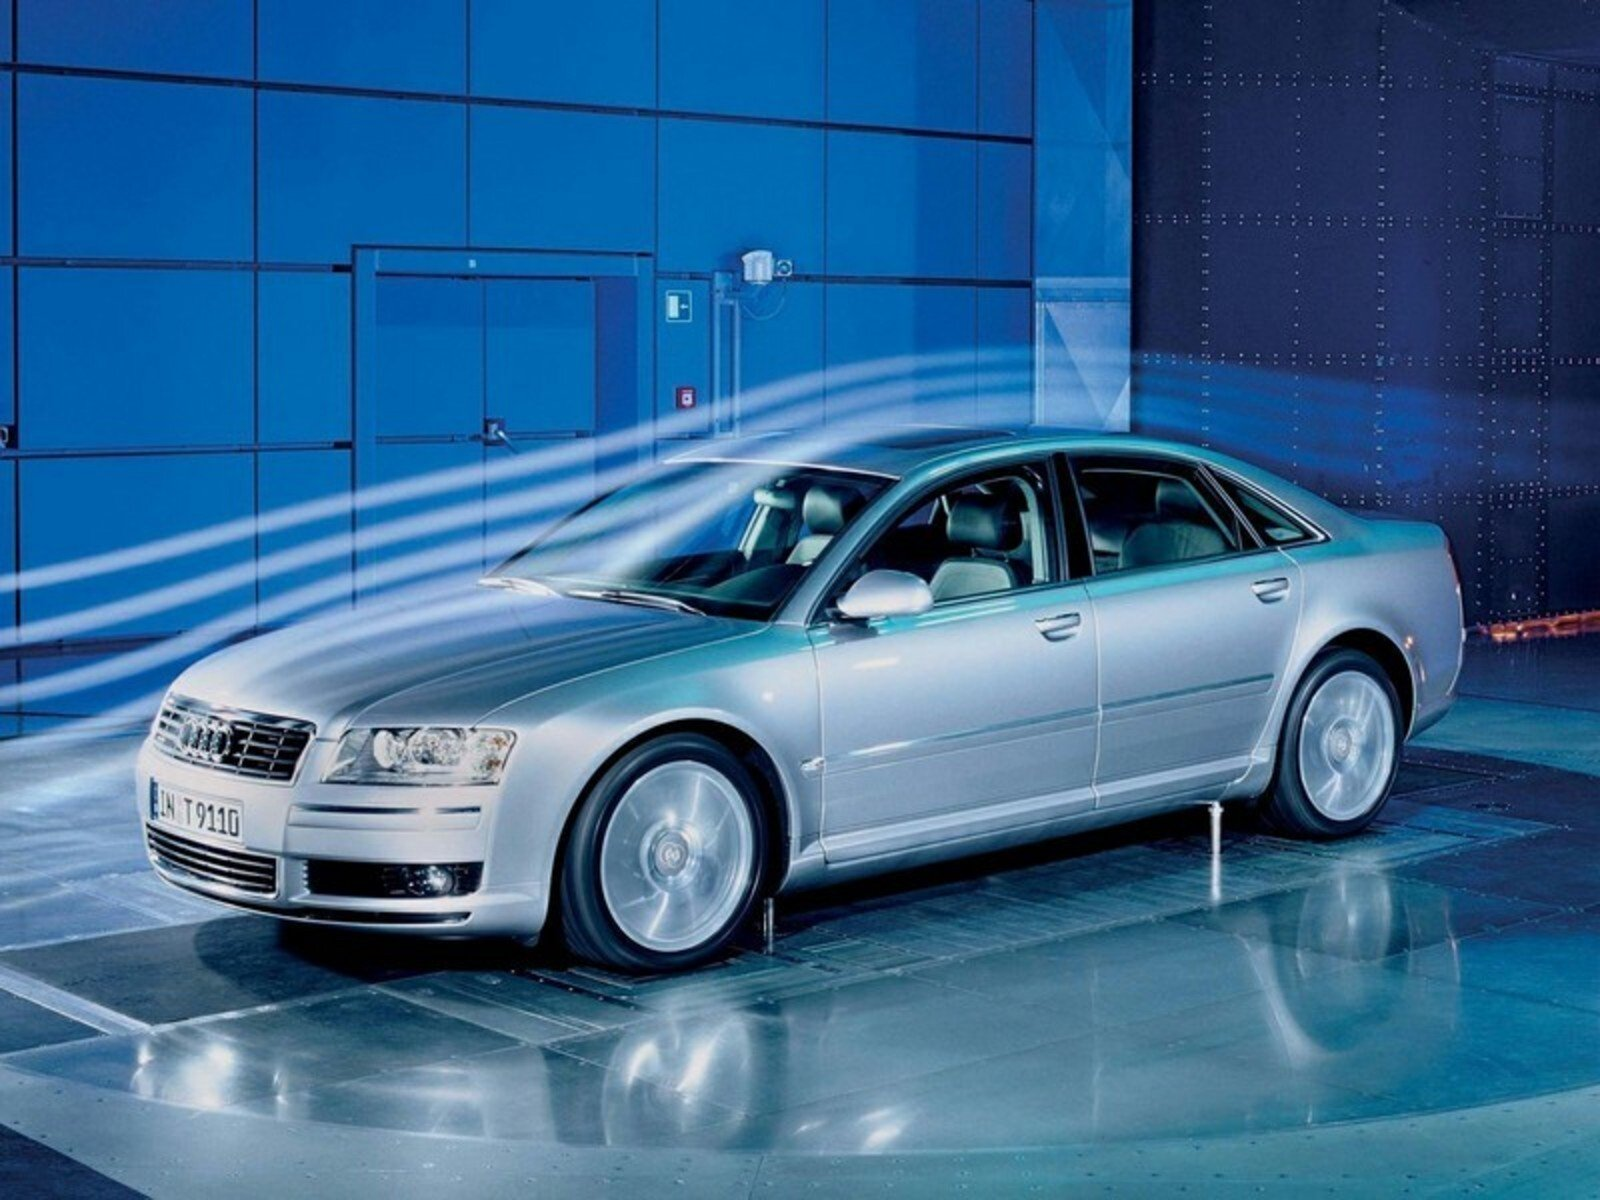 2004 audi a8 picture 30069 car review top speed. Black Bedroom Furniture Sets. Home Design Ideas